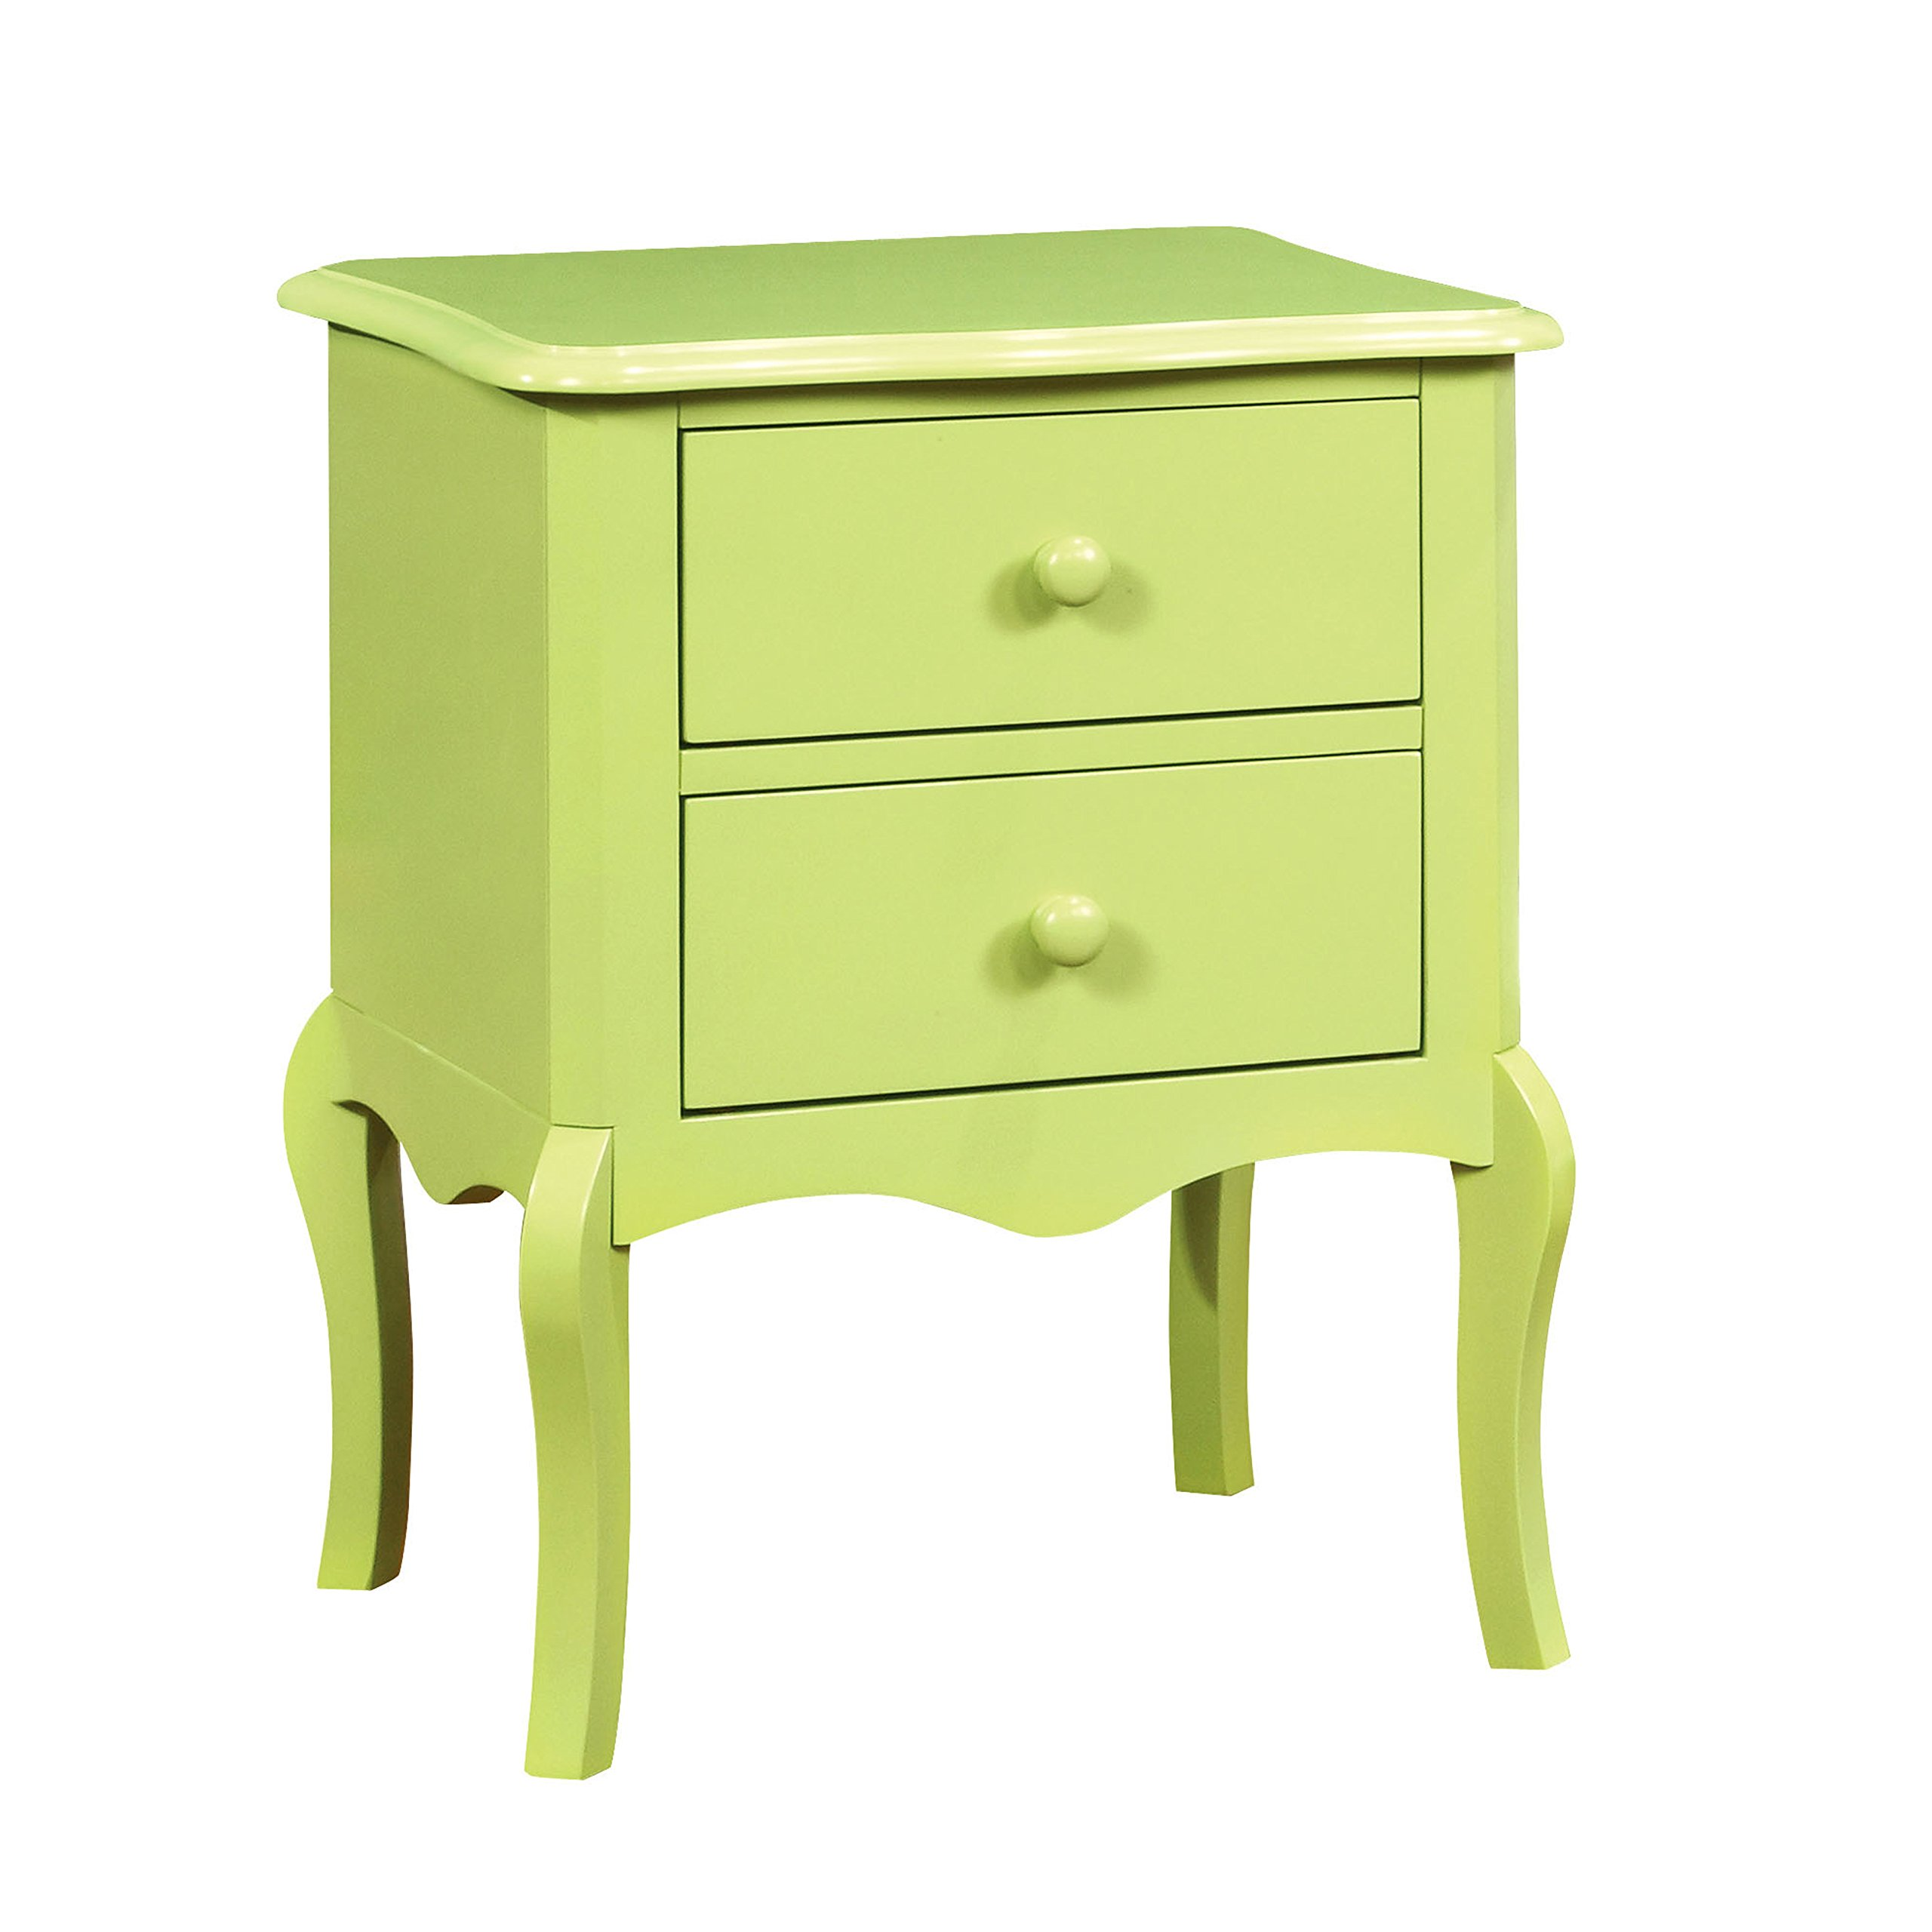 HOMES: Inside + Out IDF-AC325AG Edna Nightstand Childrens, Apple Green by HOMES: Inside + Out